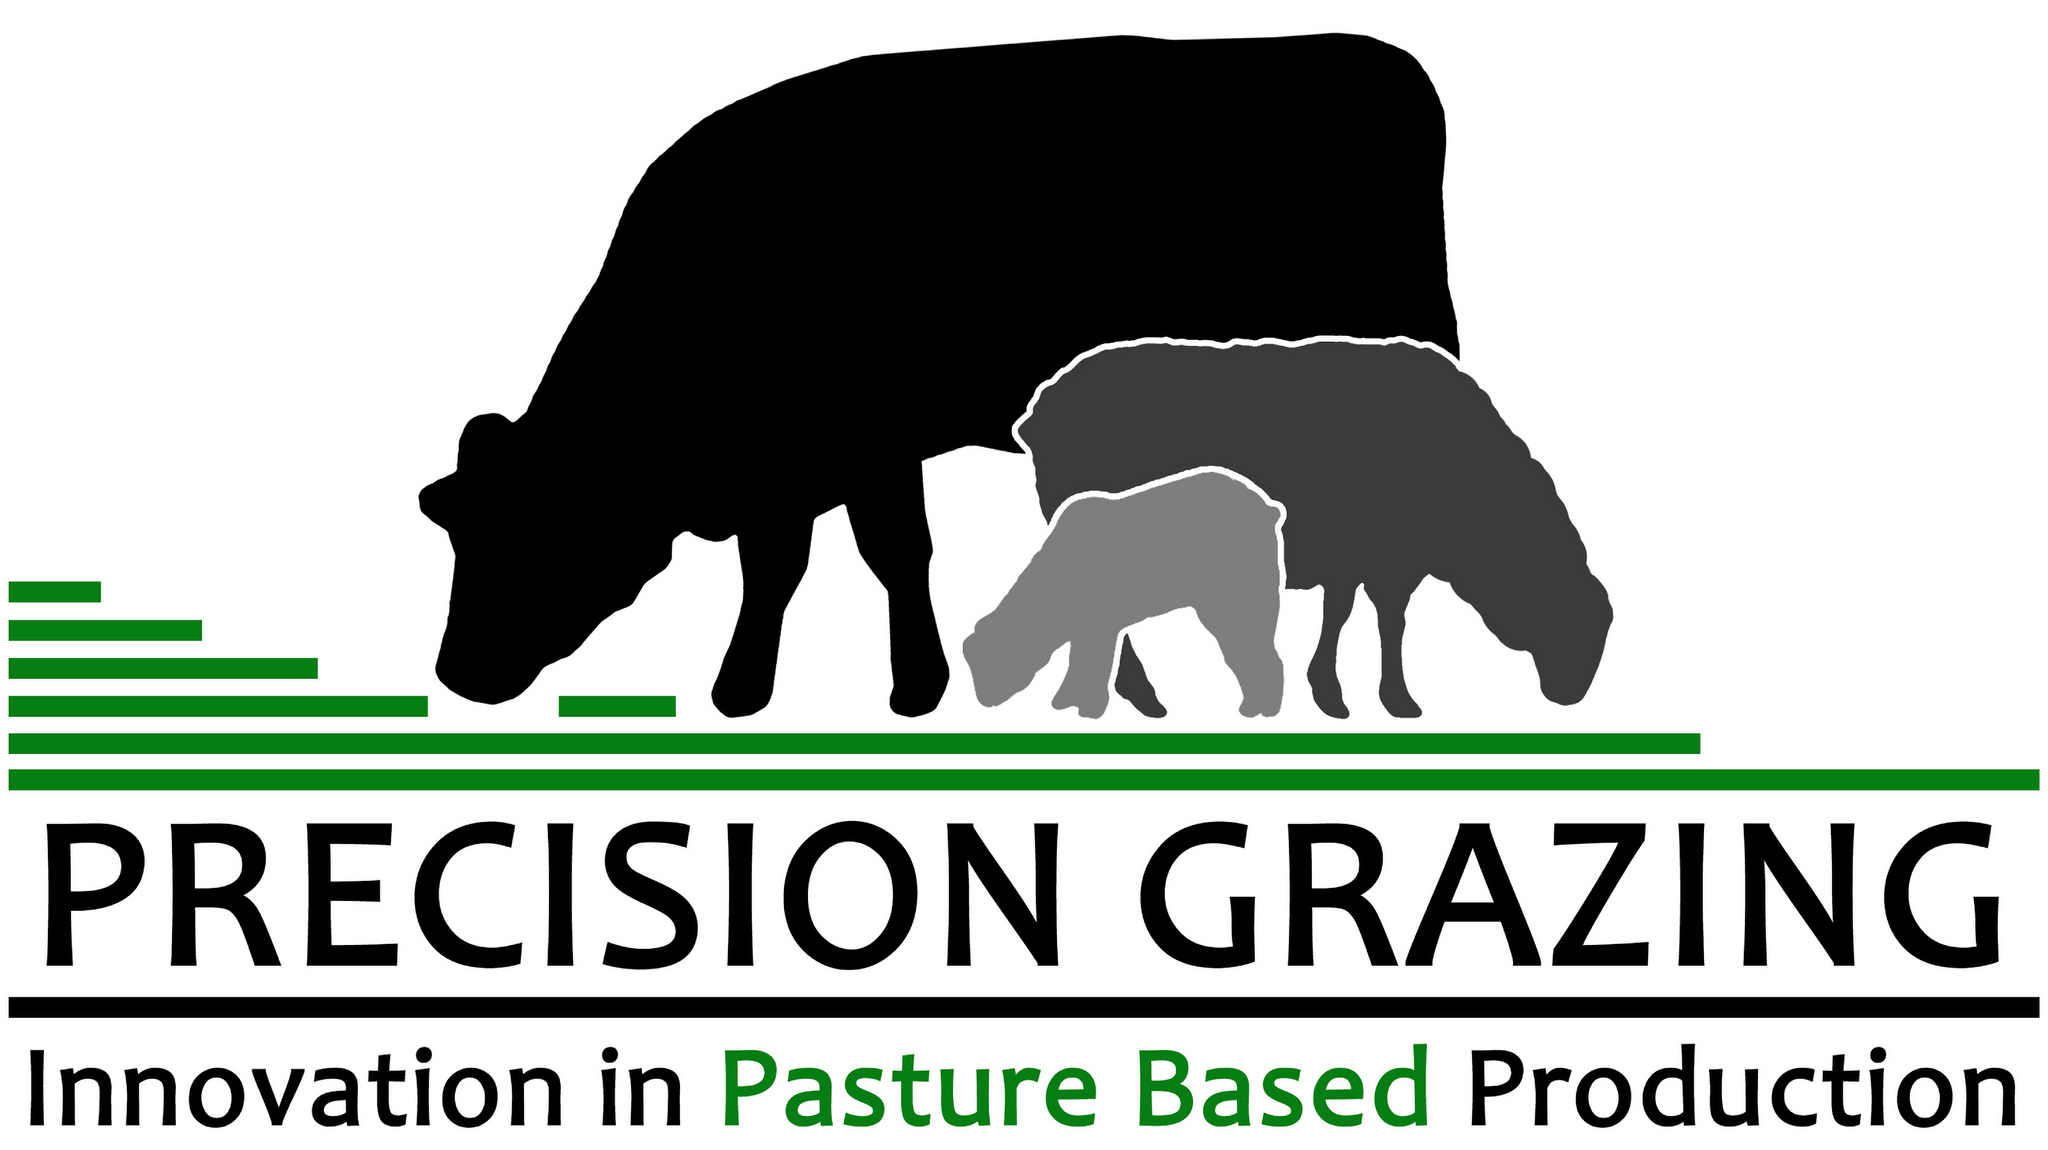 Precision Grazing